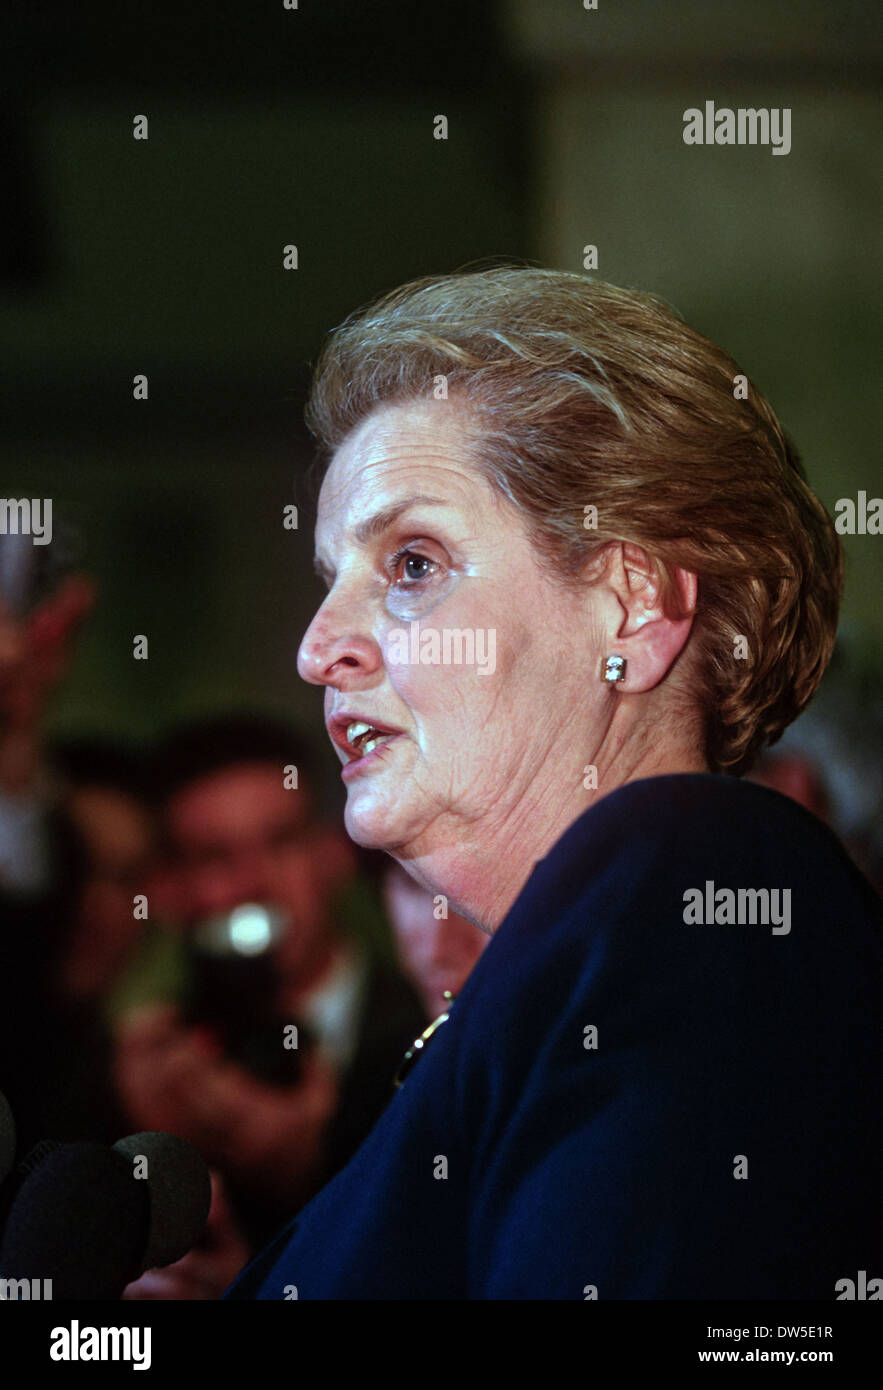 Secretary of State Madeleine Albright during a event at the White House February 25, 1998 in Washington, DC. - Stock Image